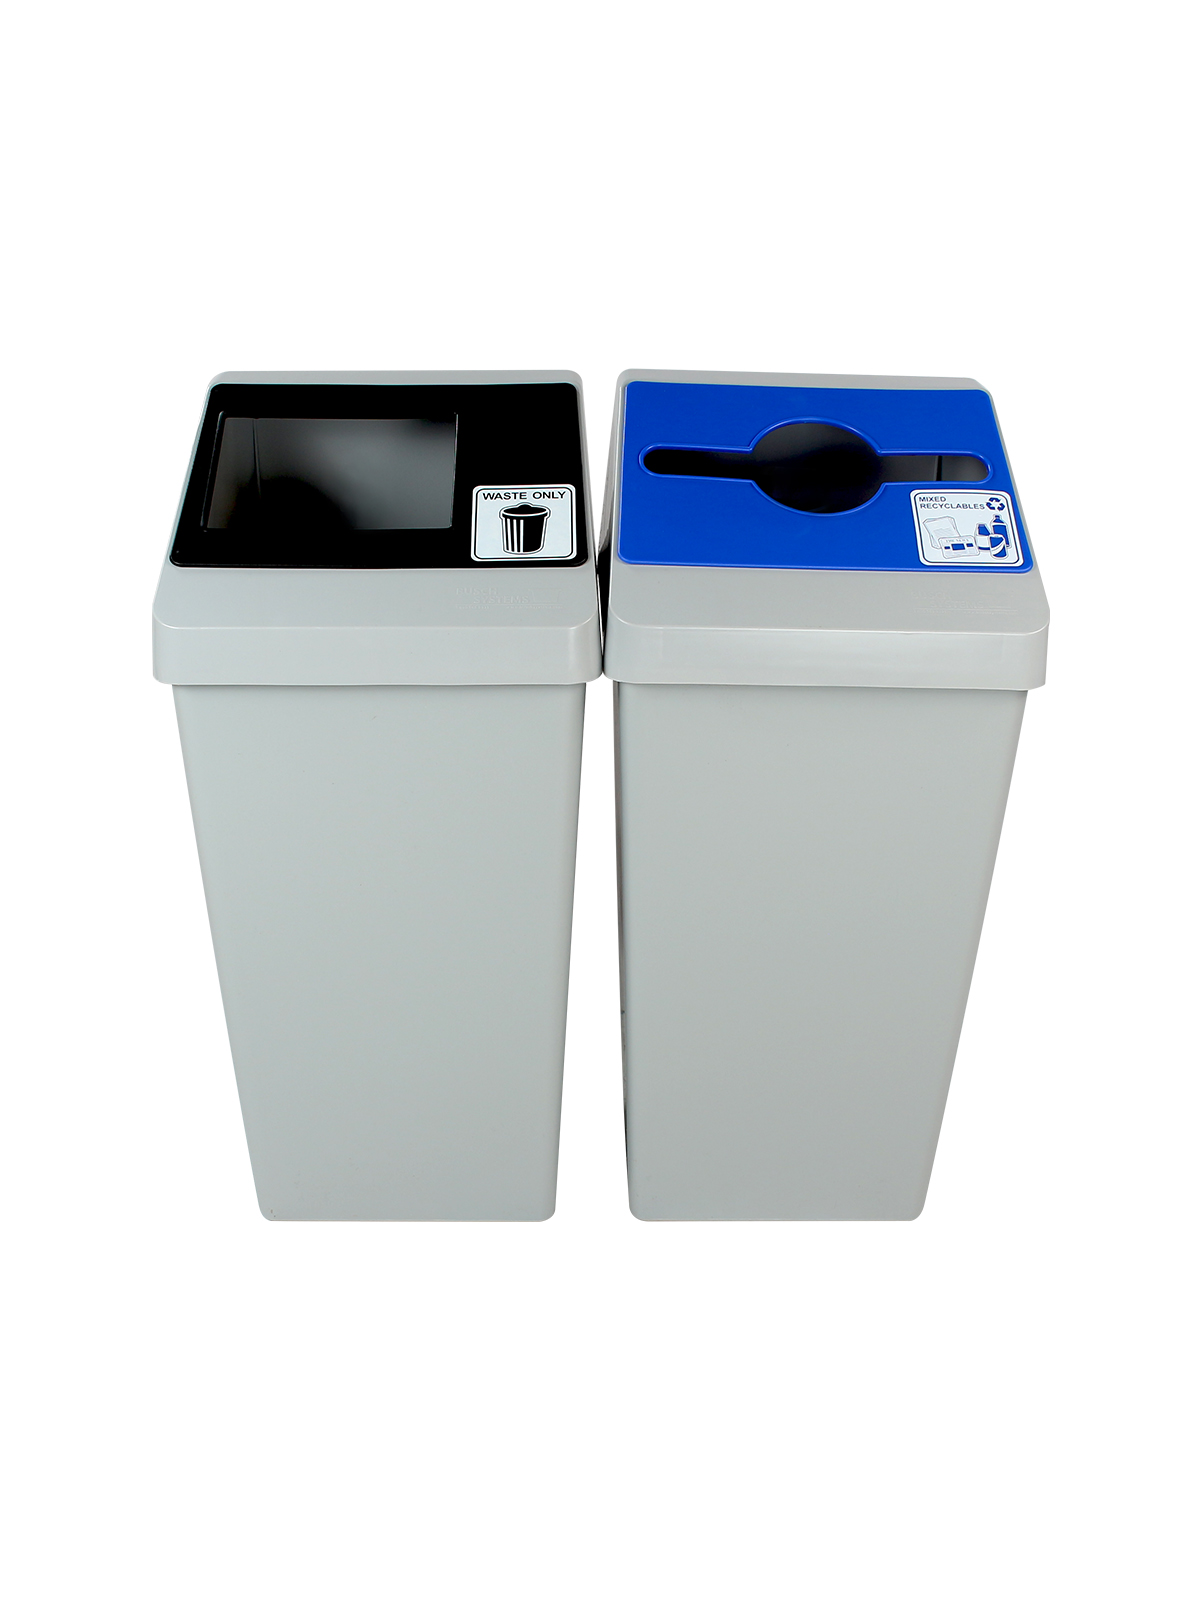 SMART SORT - DOUBLE - MIXED | FULL - GREY | BLUE |BLACK - MIXED RECYCLABLES | WASTE ONLY title=